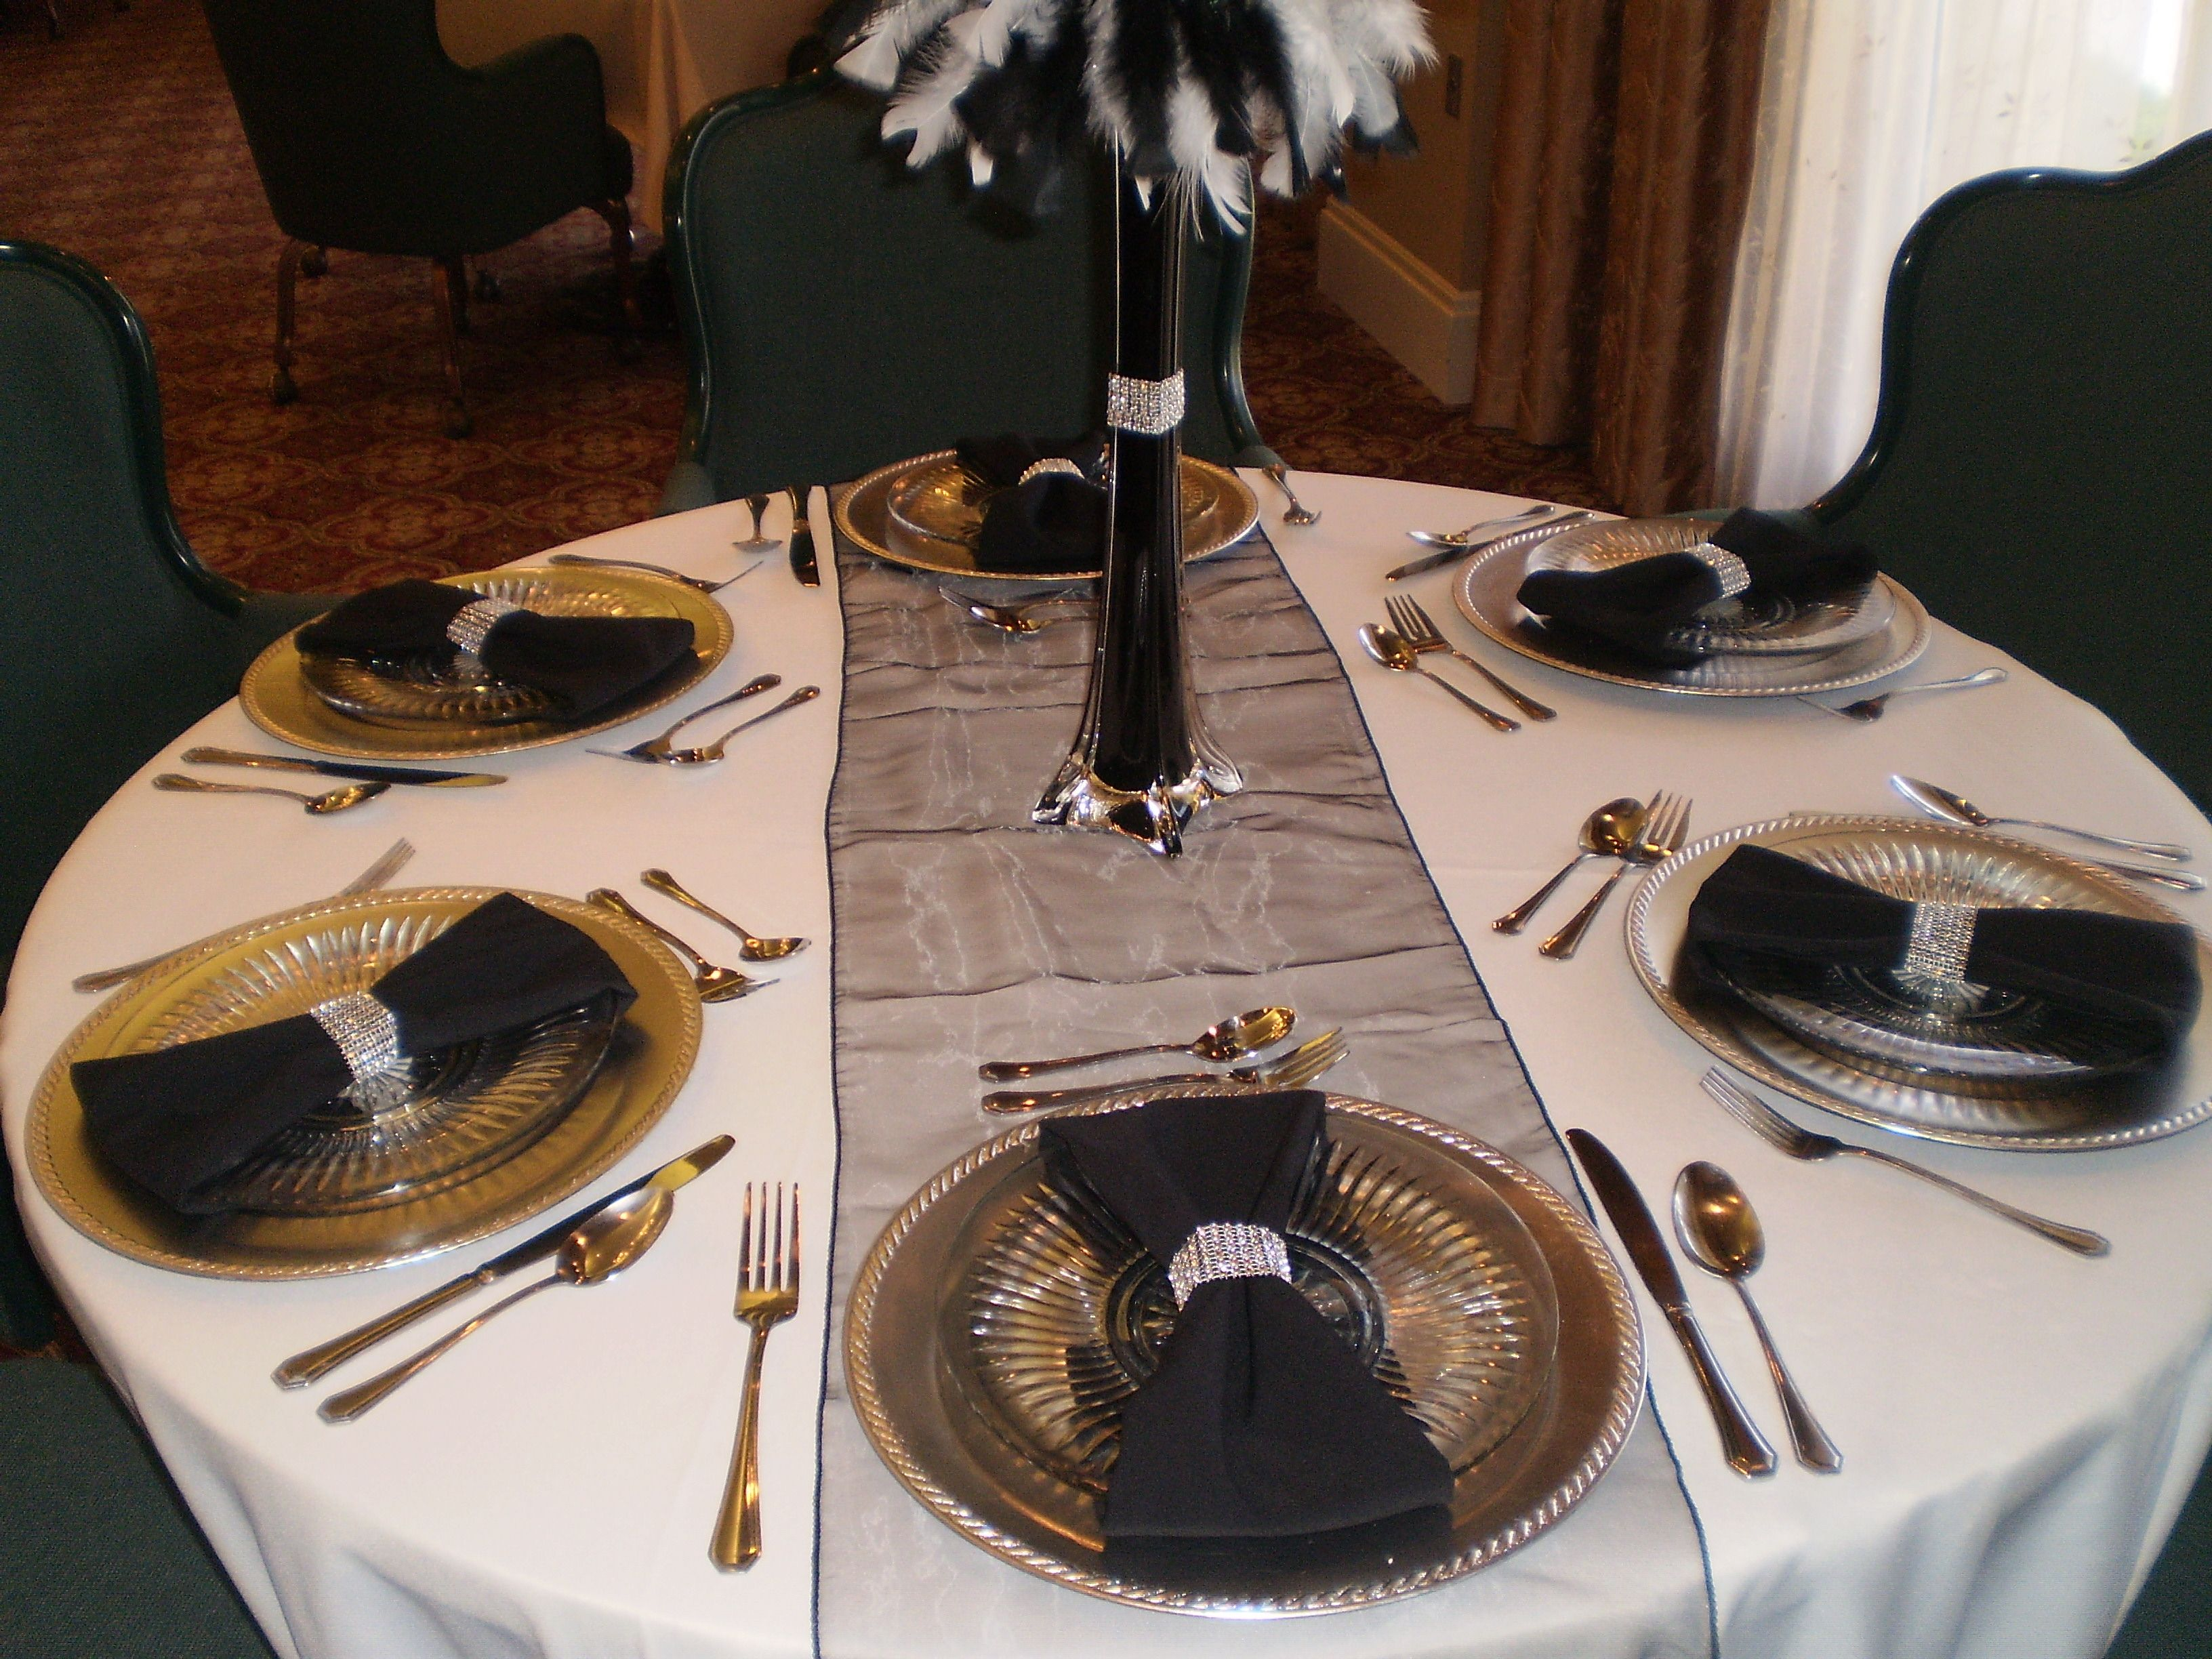 Black u0026 Silver table settings. Eiffel tower vase with feathers u0026 a table runner pull this look together. : black and silver table settings - pezcame.com